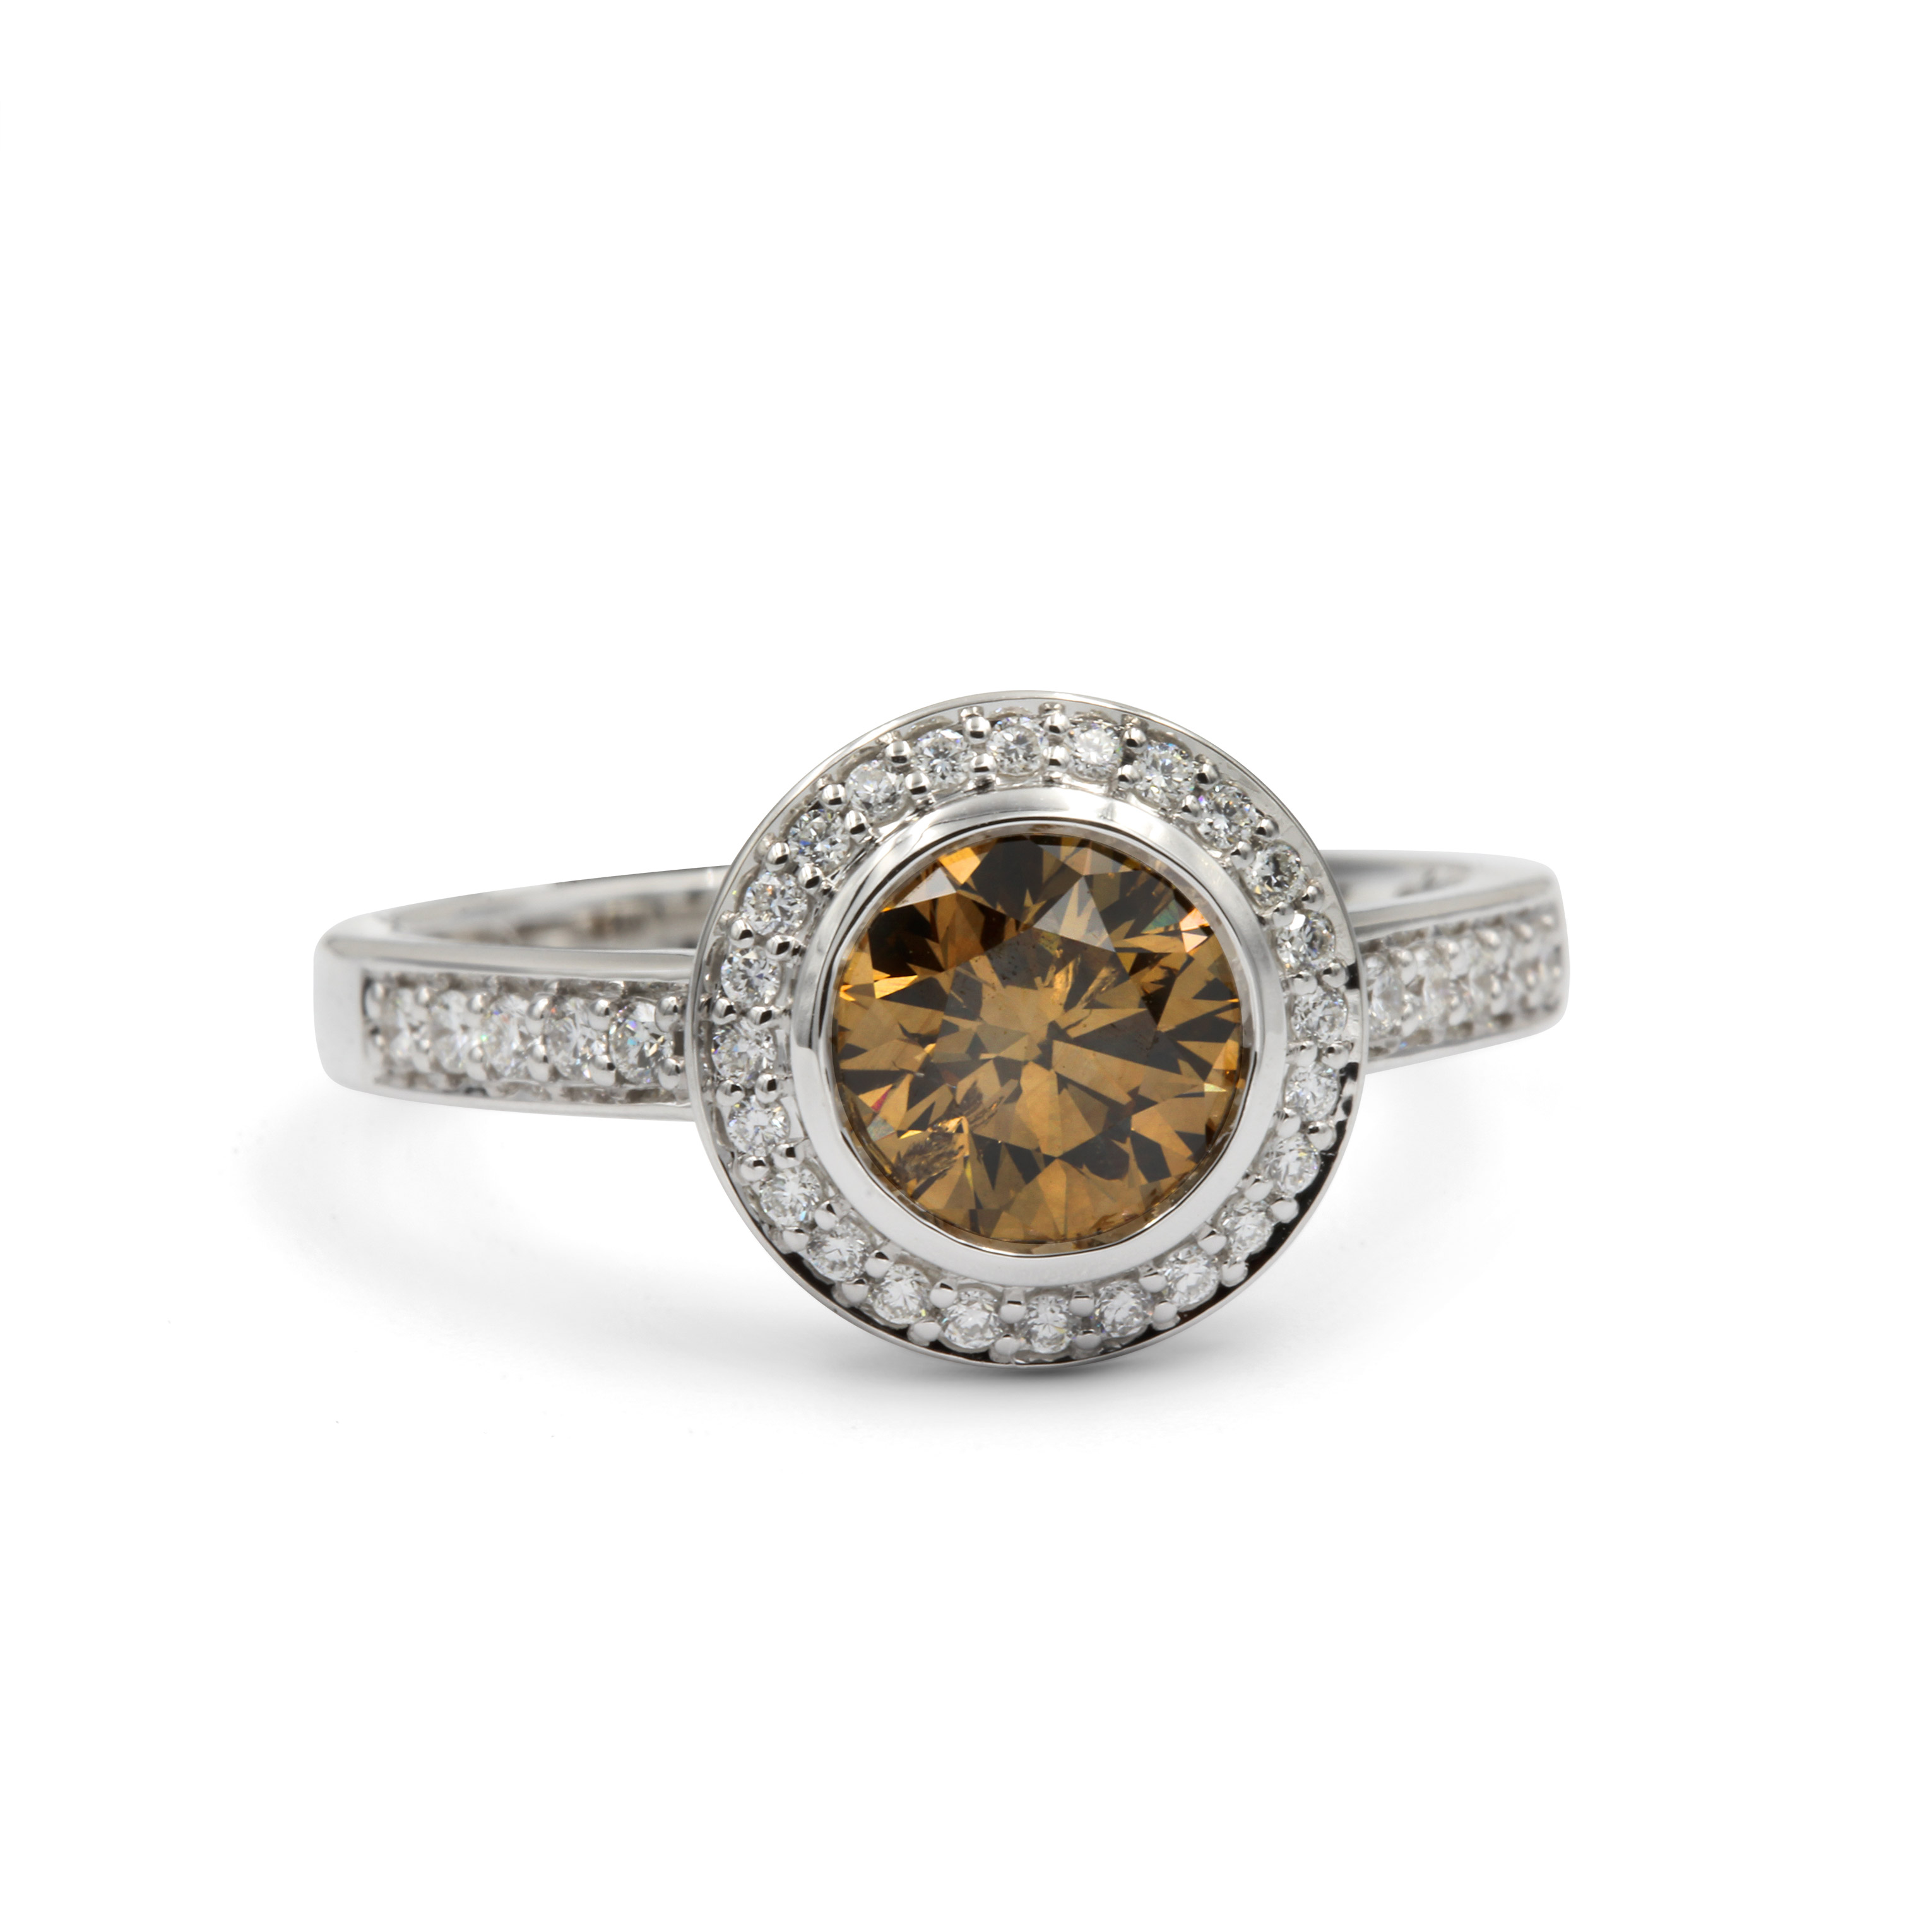 Cognac Diamond Ring in 18k White Gold surrounded by White Diamond Halo